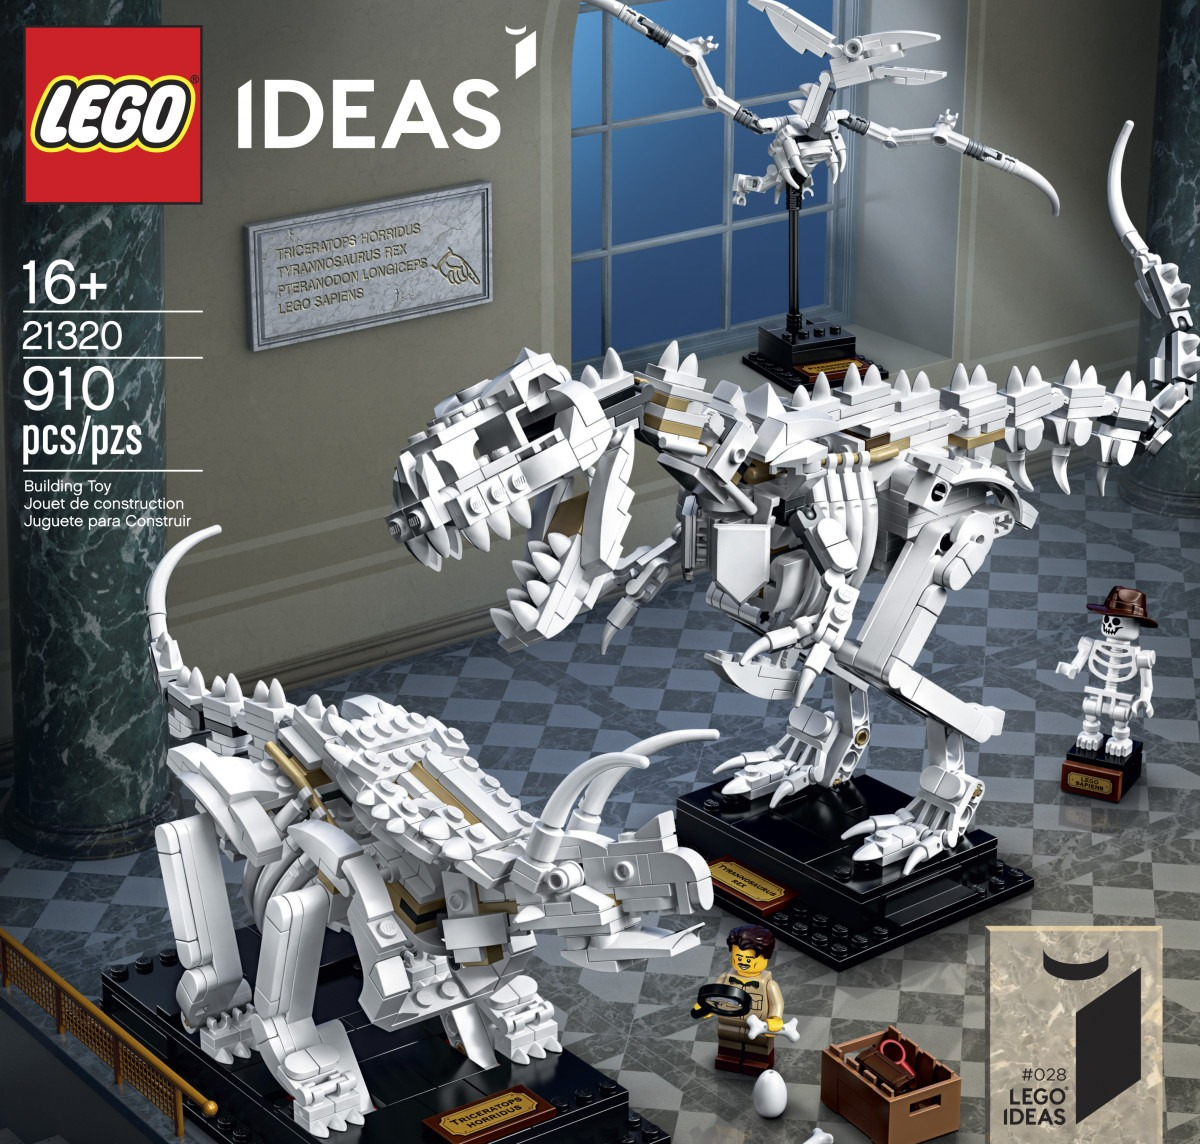 LEGO Ideas Dinosaur Fossils set officially unveiled